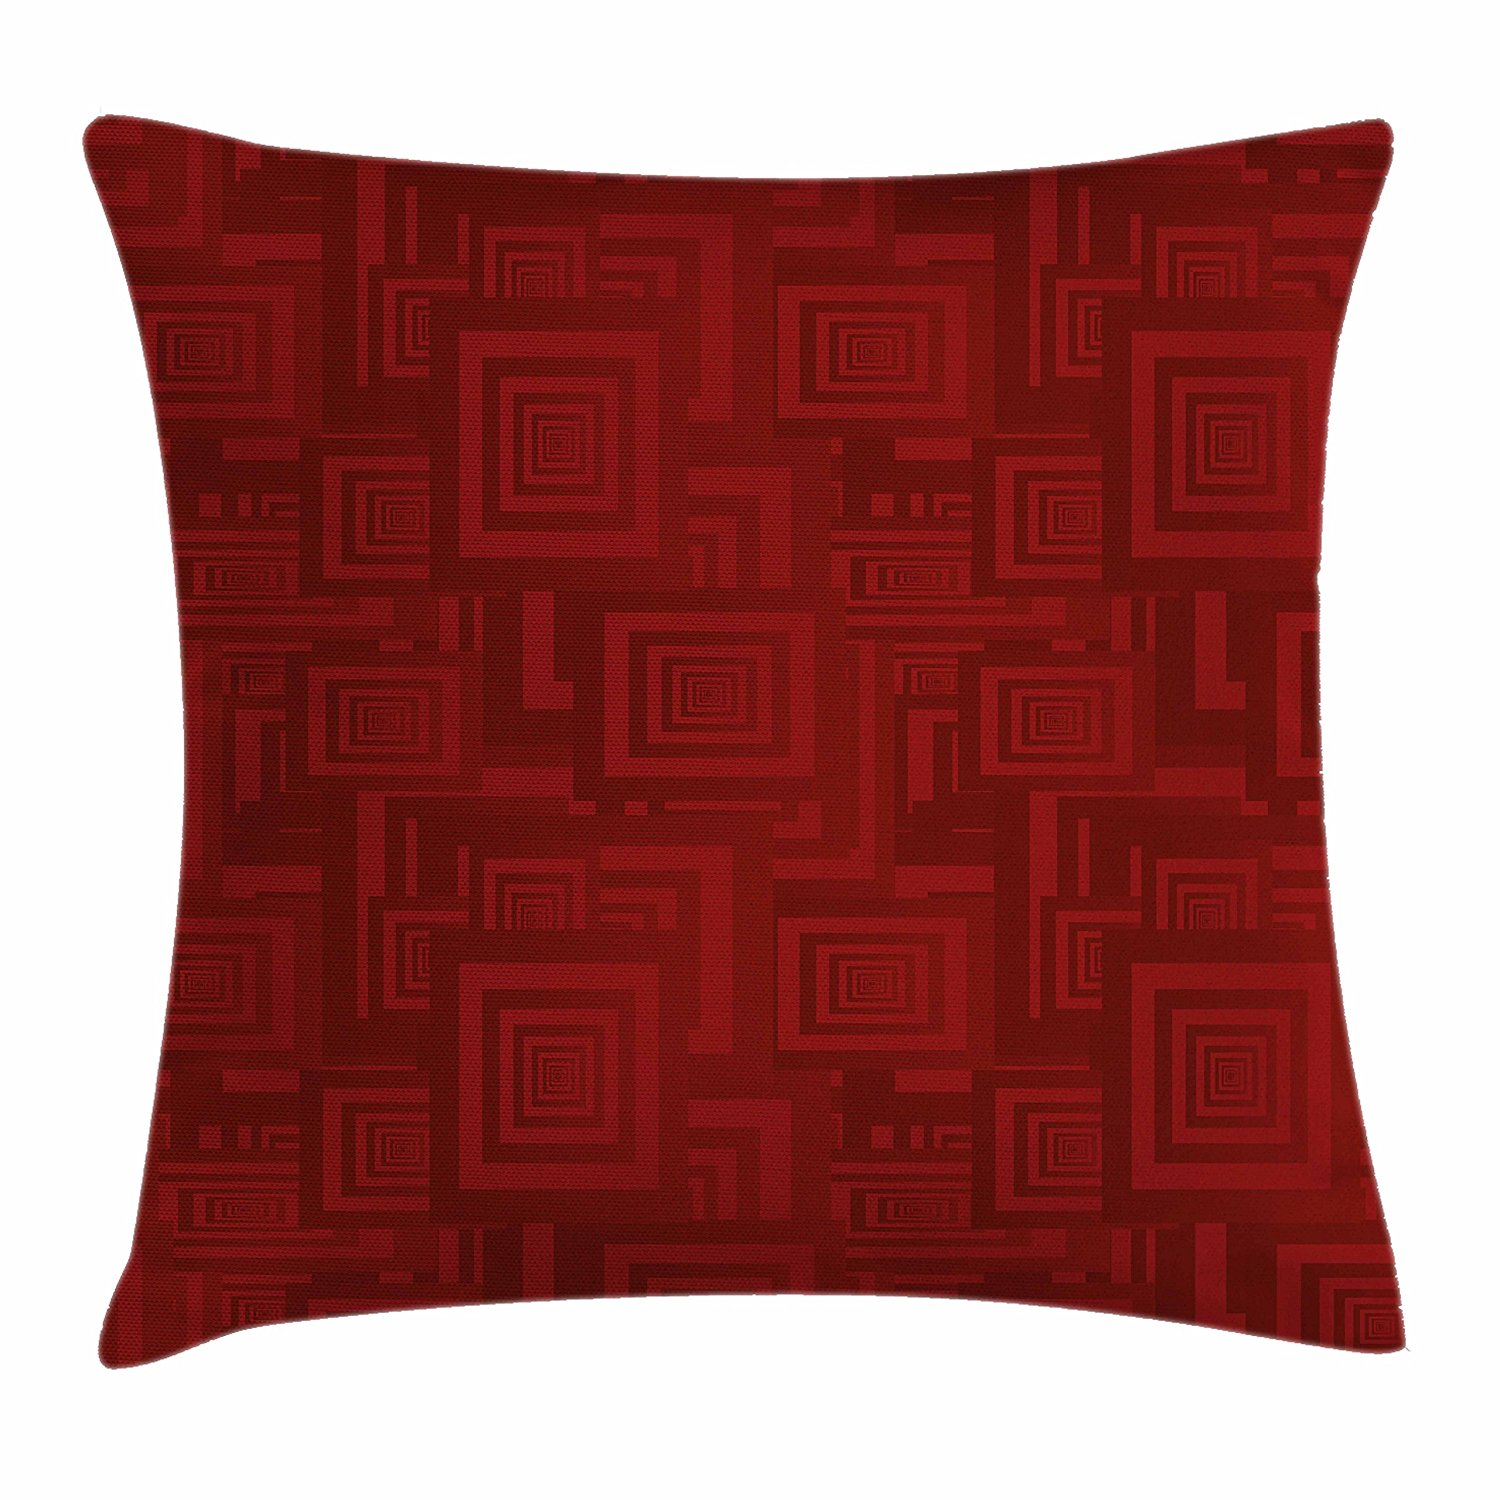 18 X 18 Inches Antique Arabic Artwork Oriental Mandala Inspired Round Ornament Moroccan Ethnic Gold Maroon Decorative Square Accent Pillow Case Ambesonne Maroon Throw Pillow Cushion Cover by